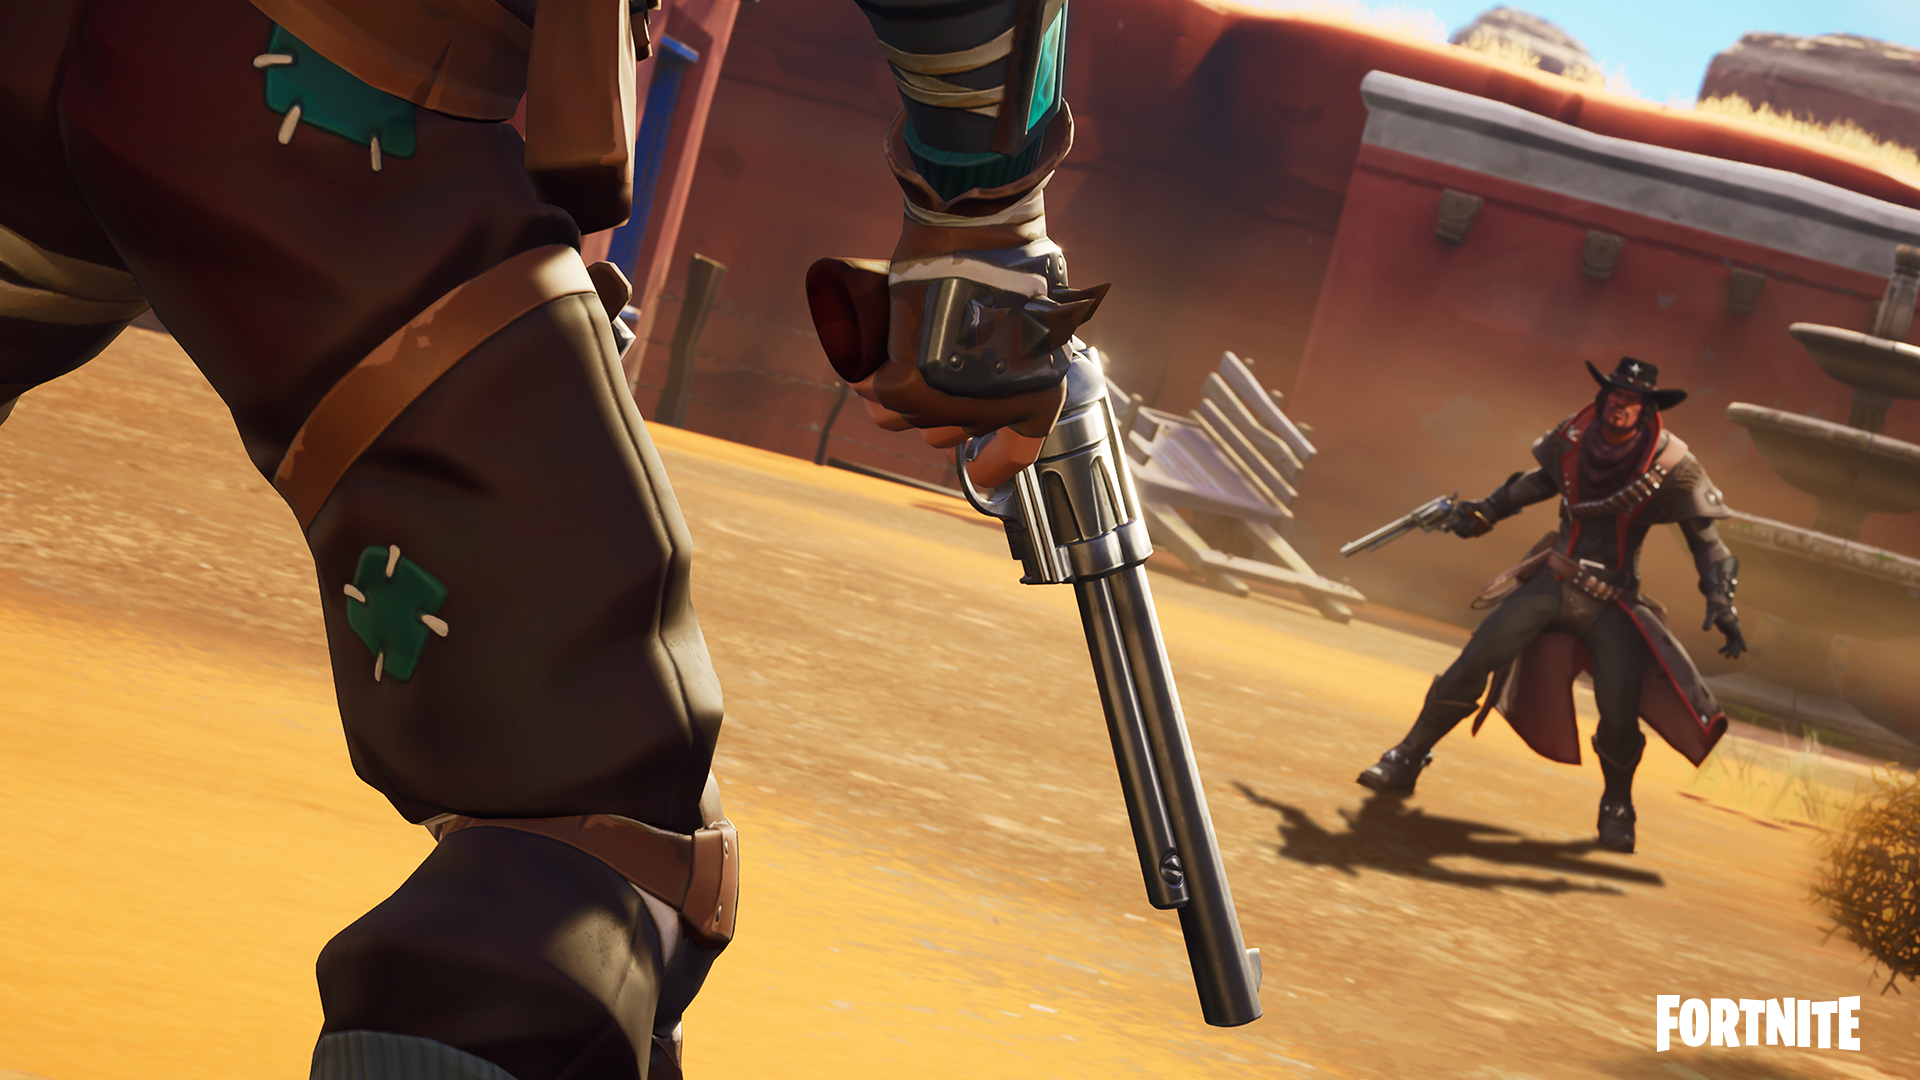 fortnite update v6 30 brings wild west limited time mode new weapon and more full patch notes detailed gameranx - fortnite stability patch